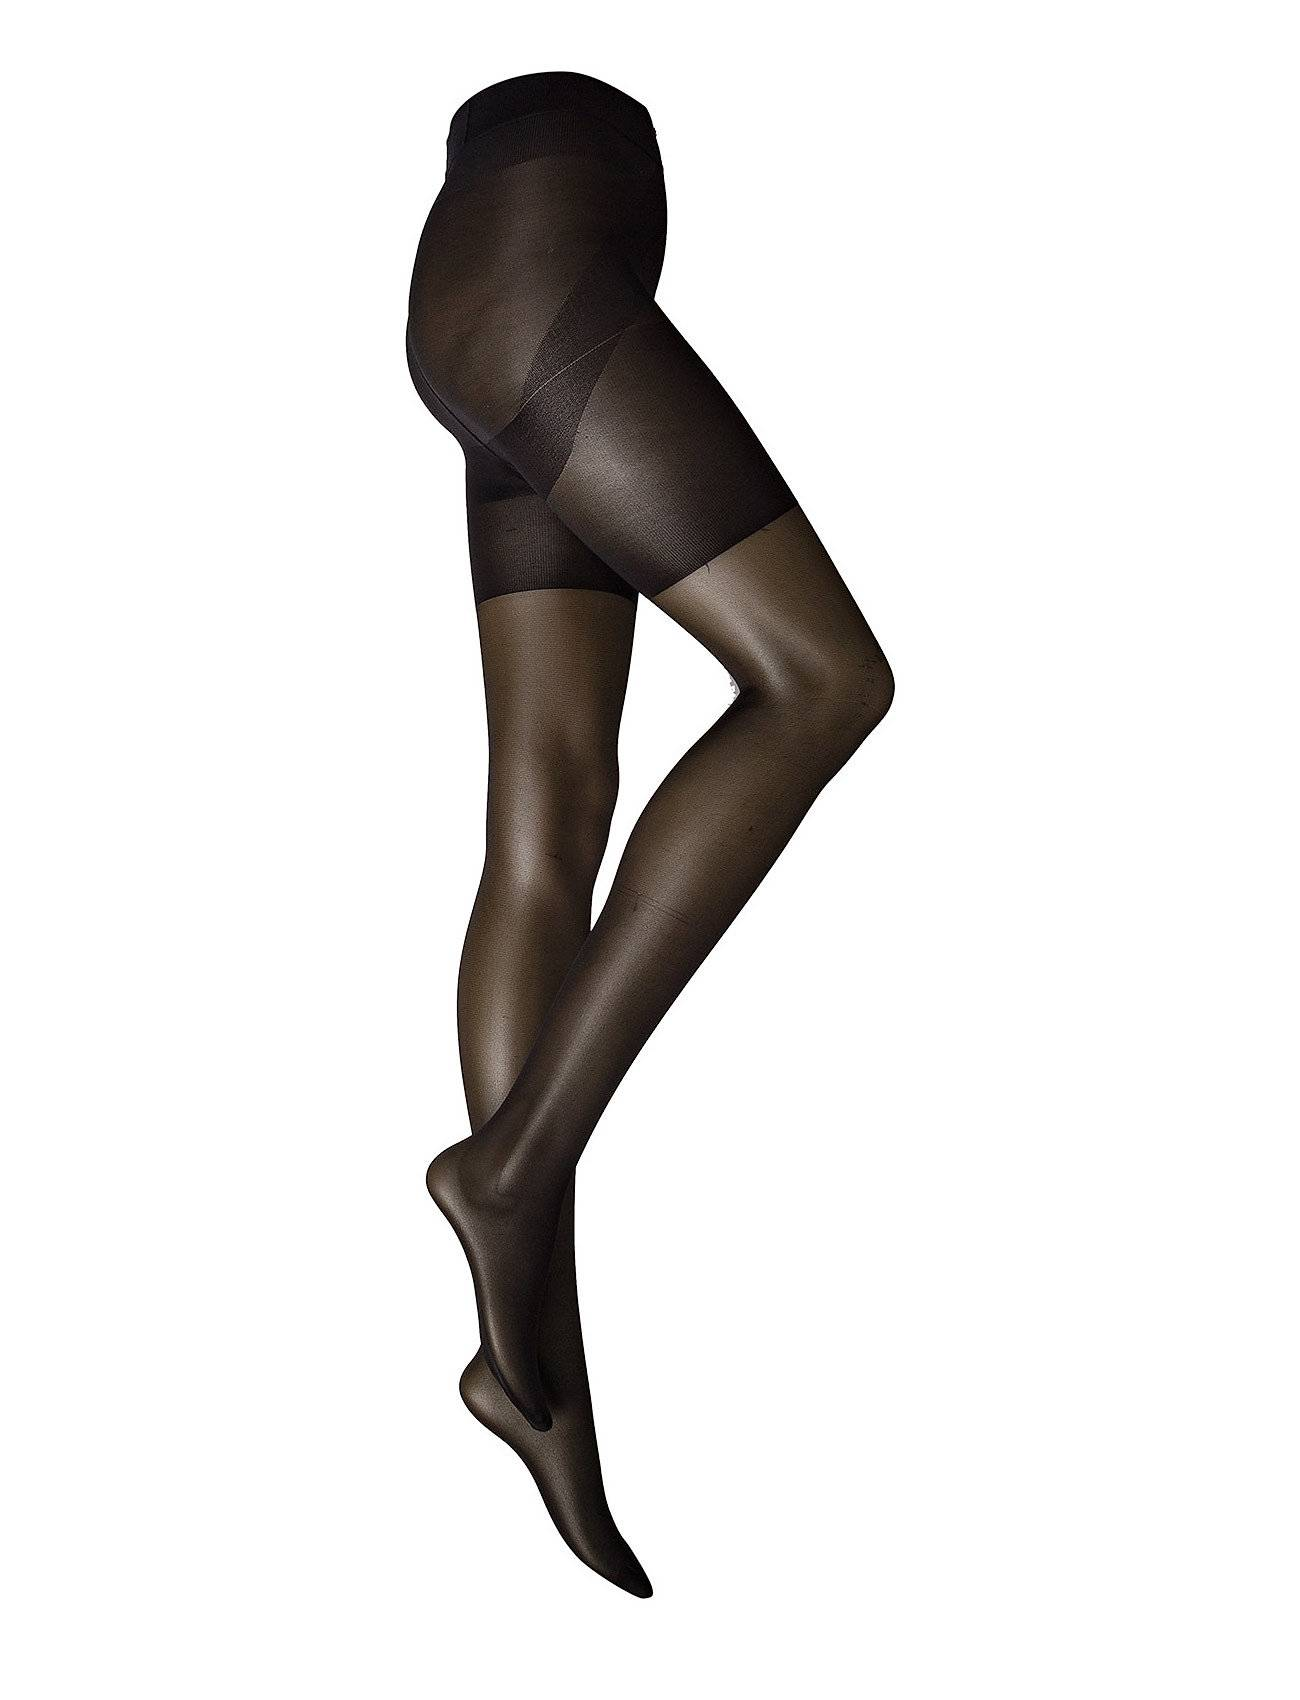 Vogue Ladies Den Pantyhose, Lift Up Support 20den